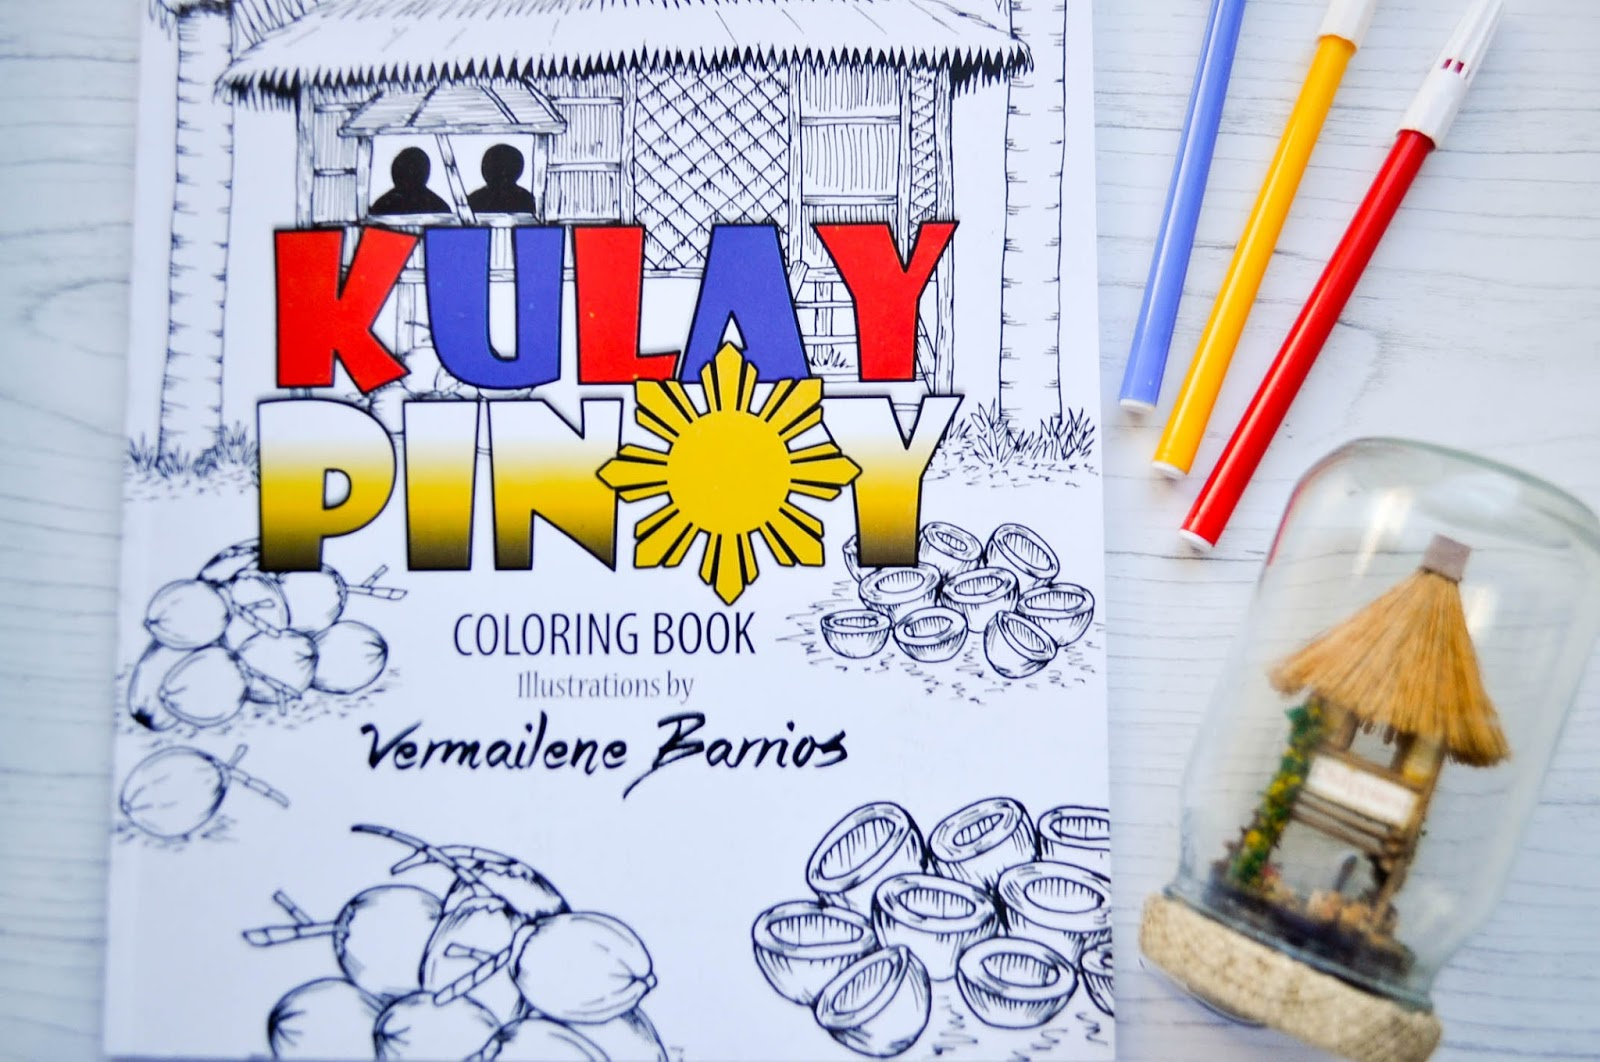 Adult Coloring Books Has Been Trending Across The Country For Quite Some Time Now New And More Are Being Sold Online Or In Stores